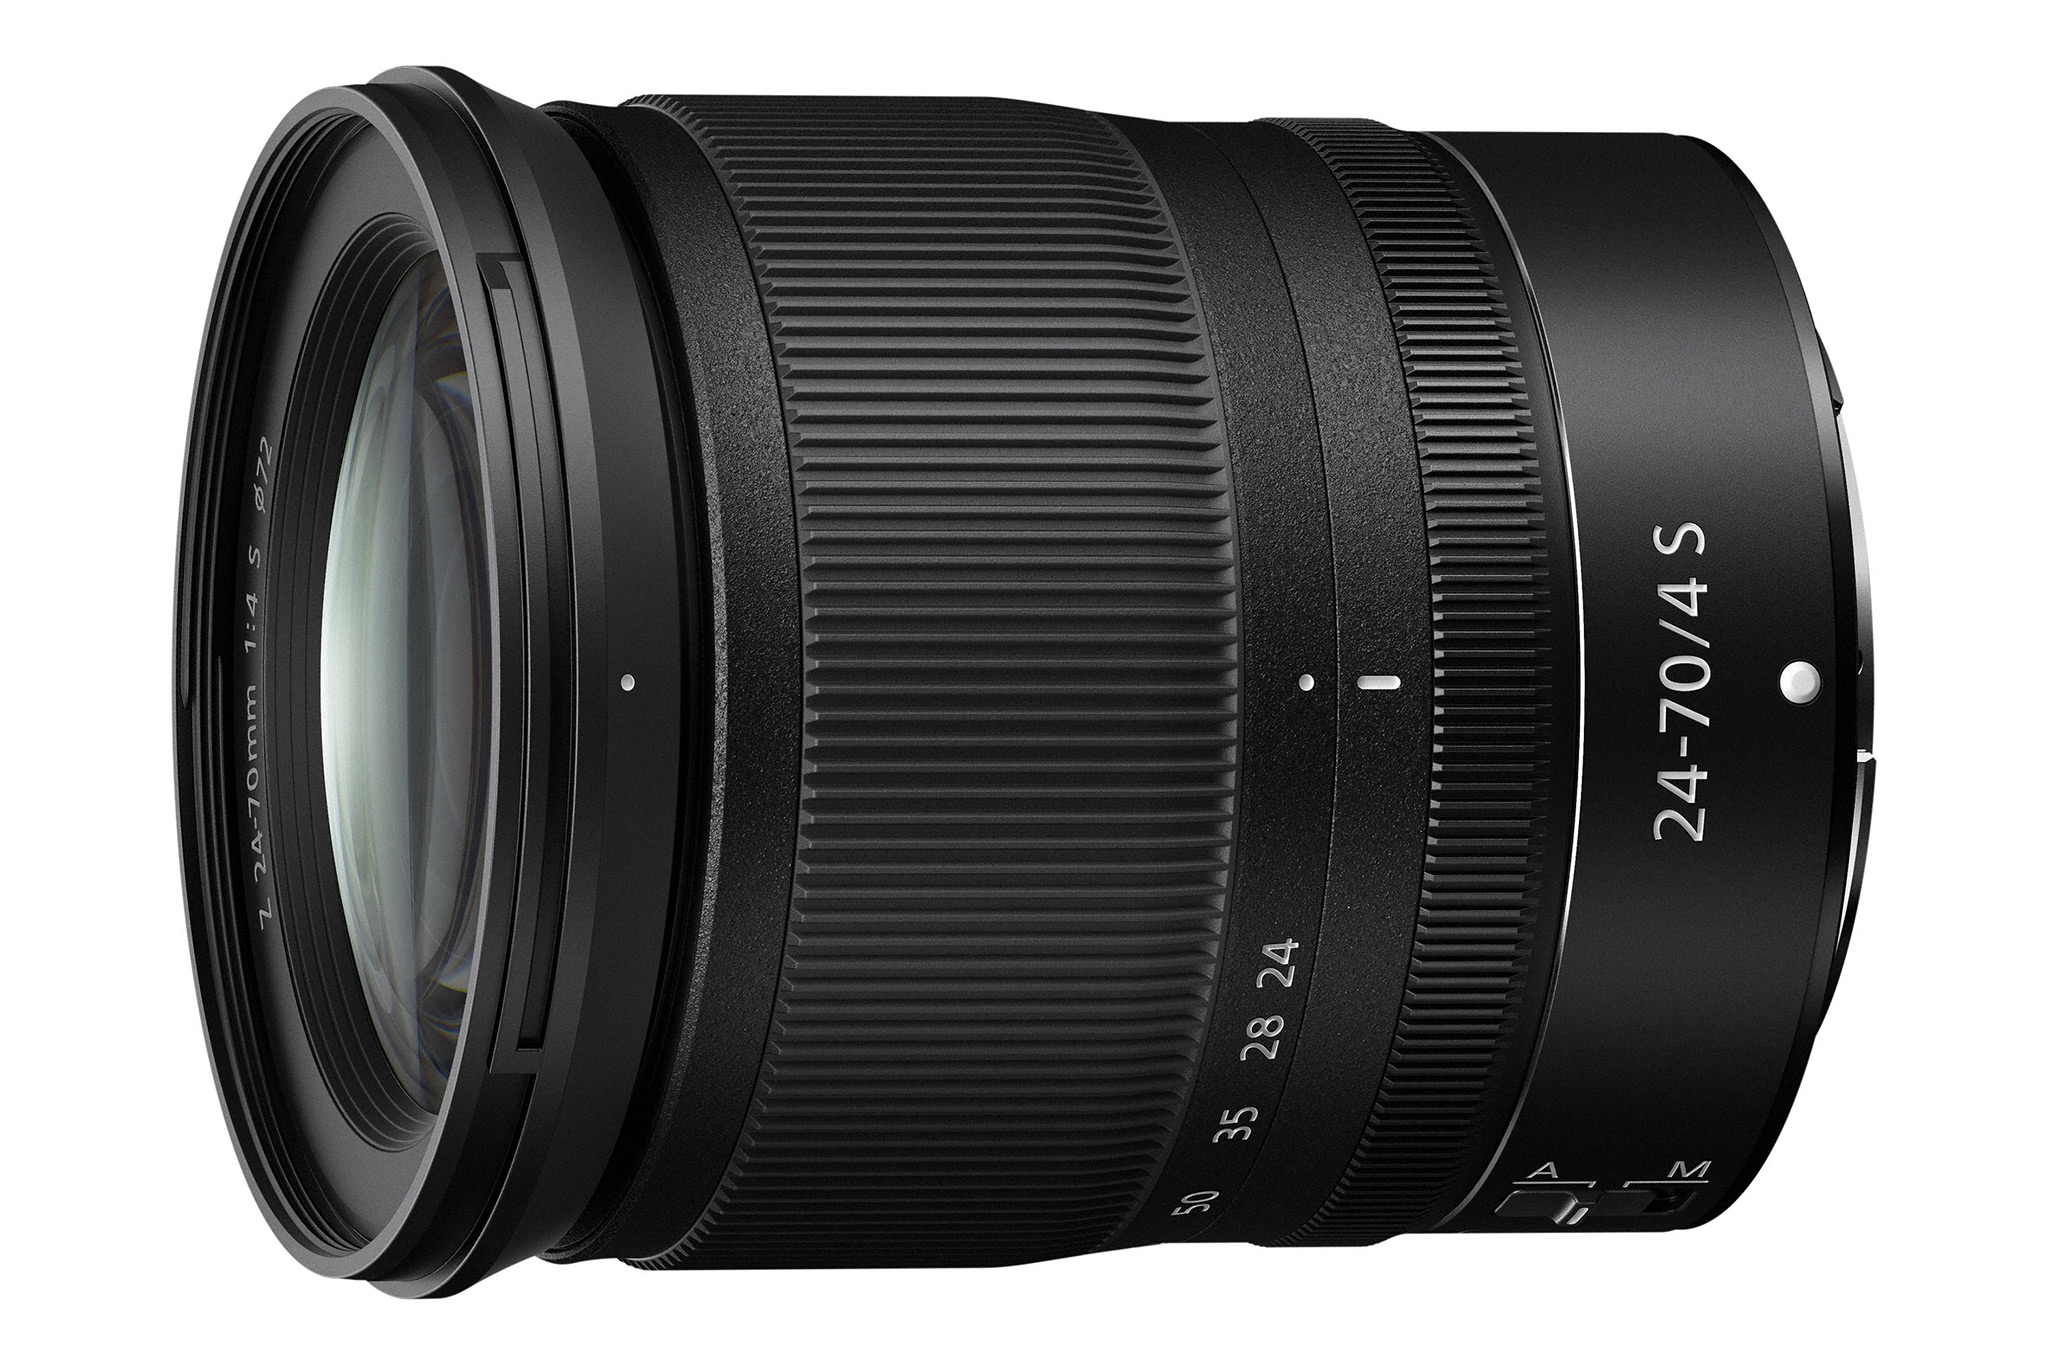 Nikon Z 24-70mm f/4 S Review - Photography Life